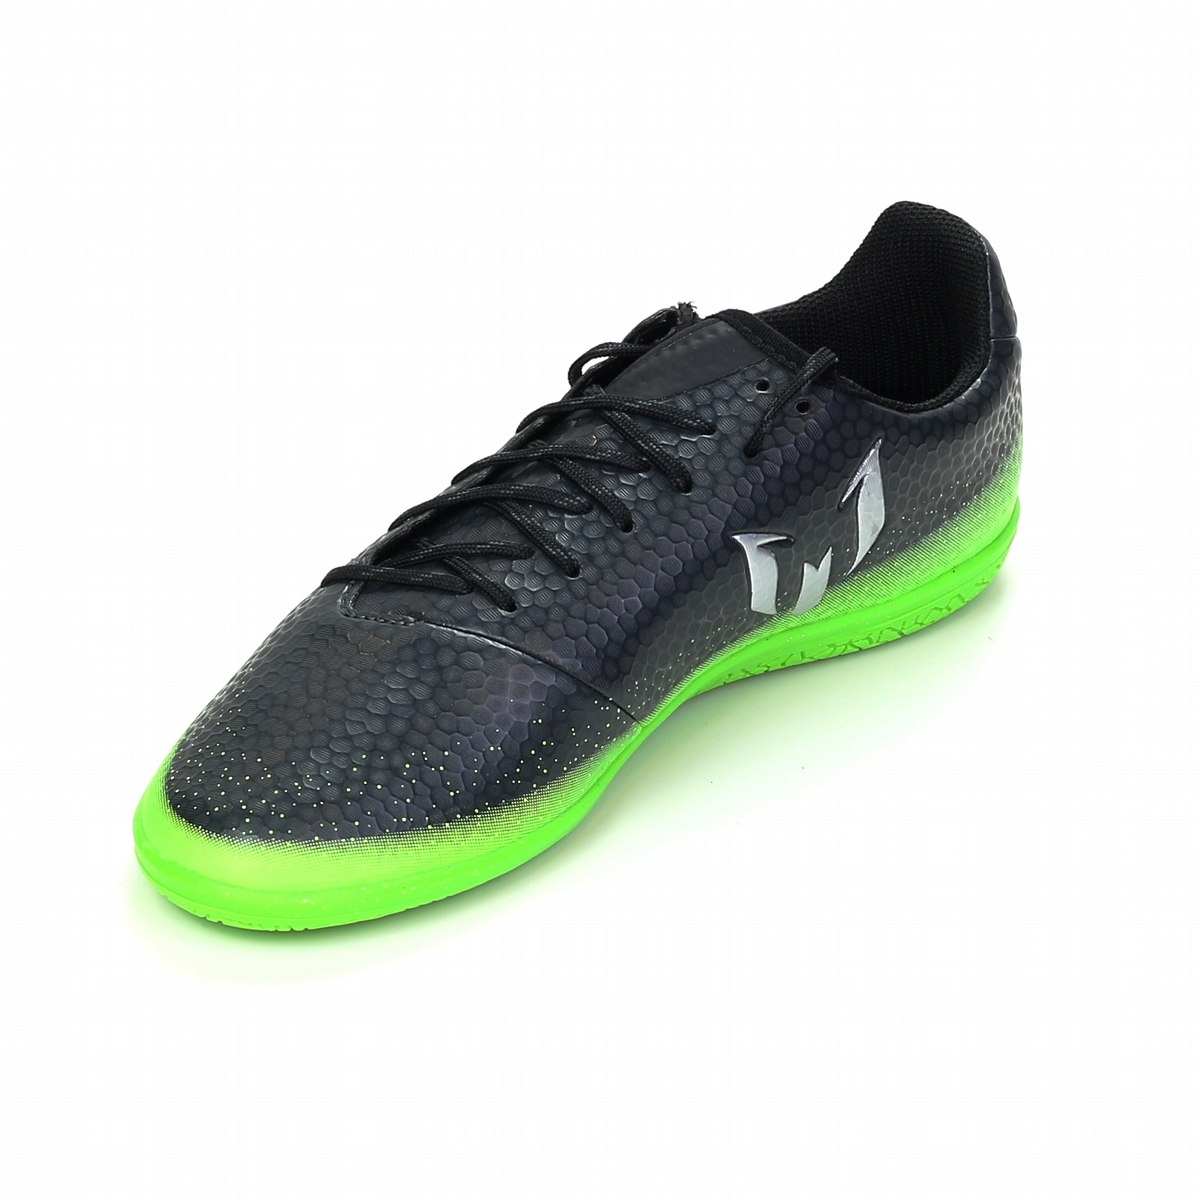 ab7336d0e23 Adidas Messi 16.3 Youth Indoor Soccer Shoes (Dark Grey Silver ...